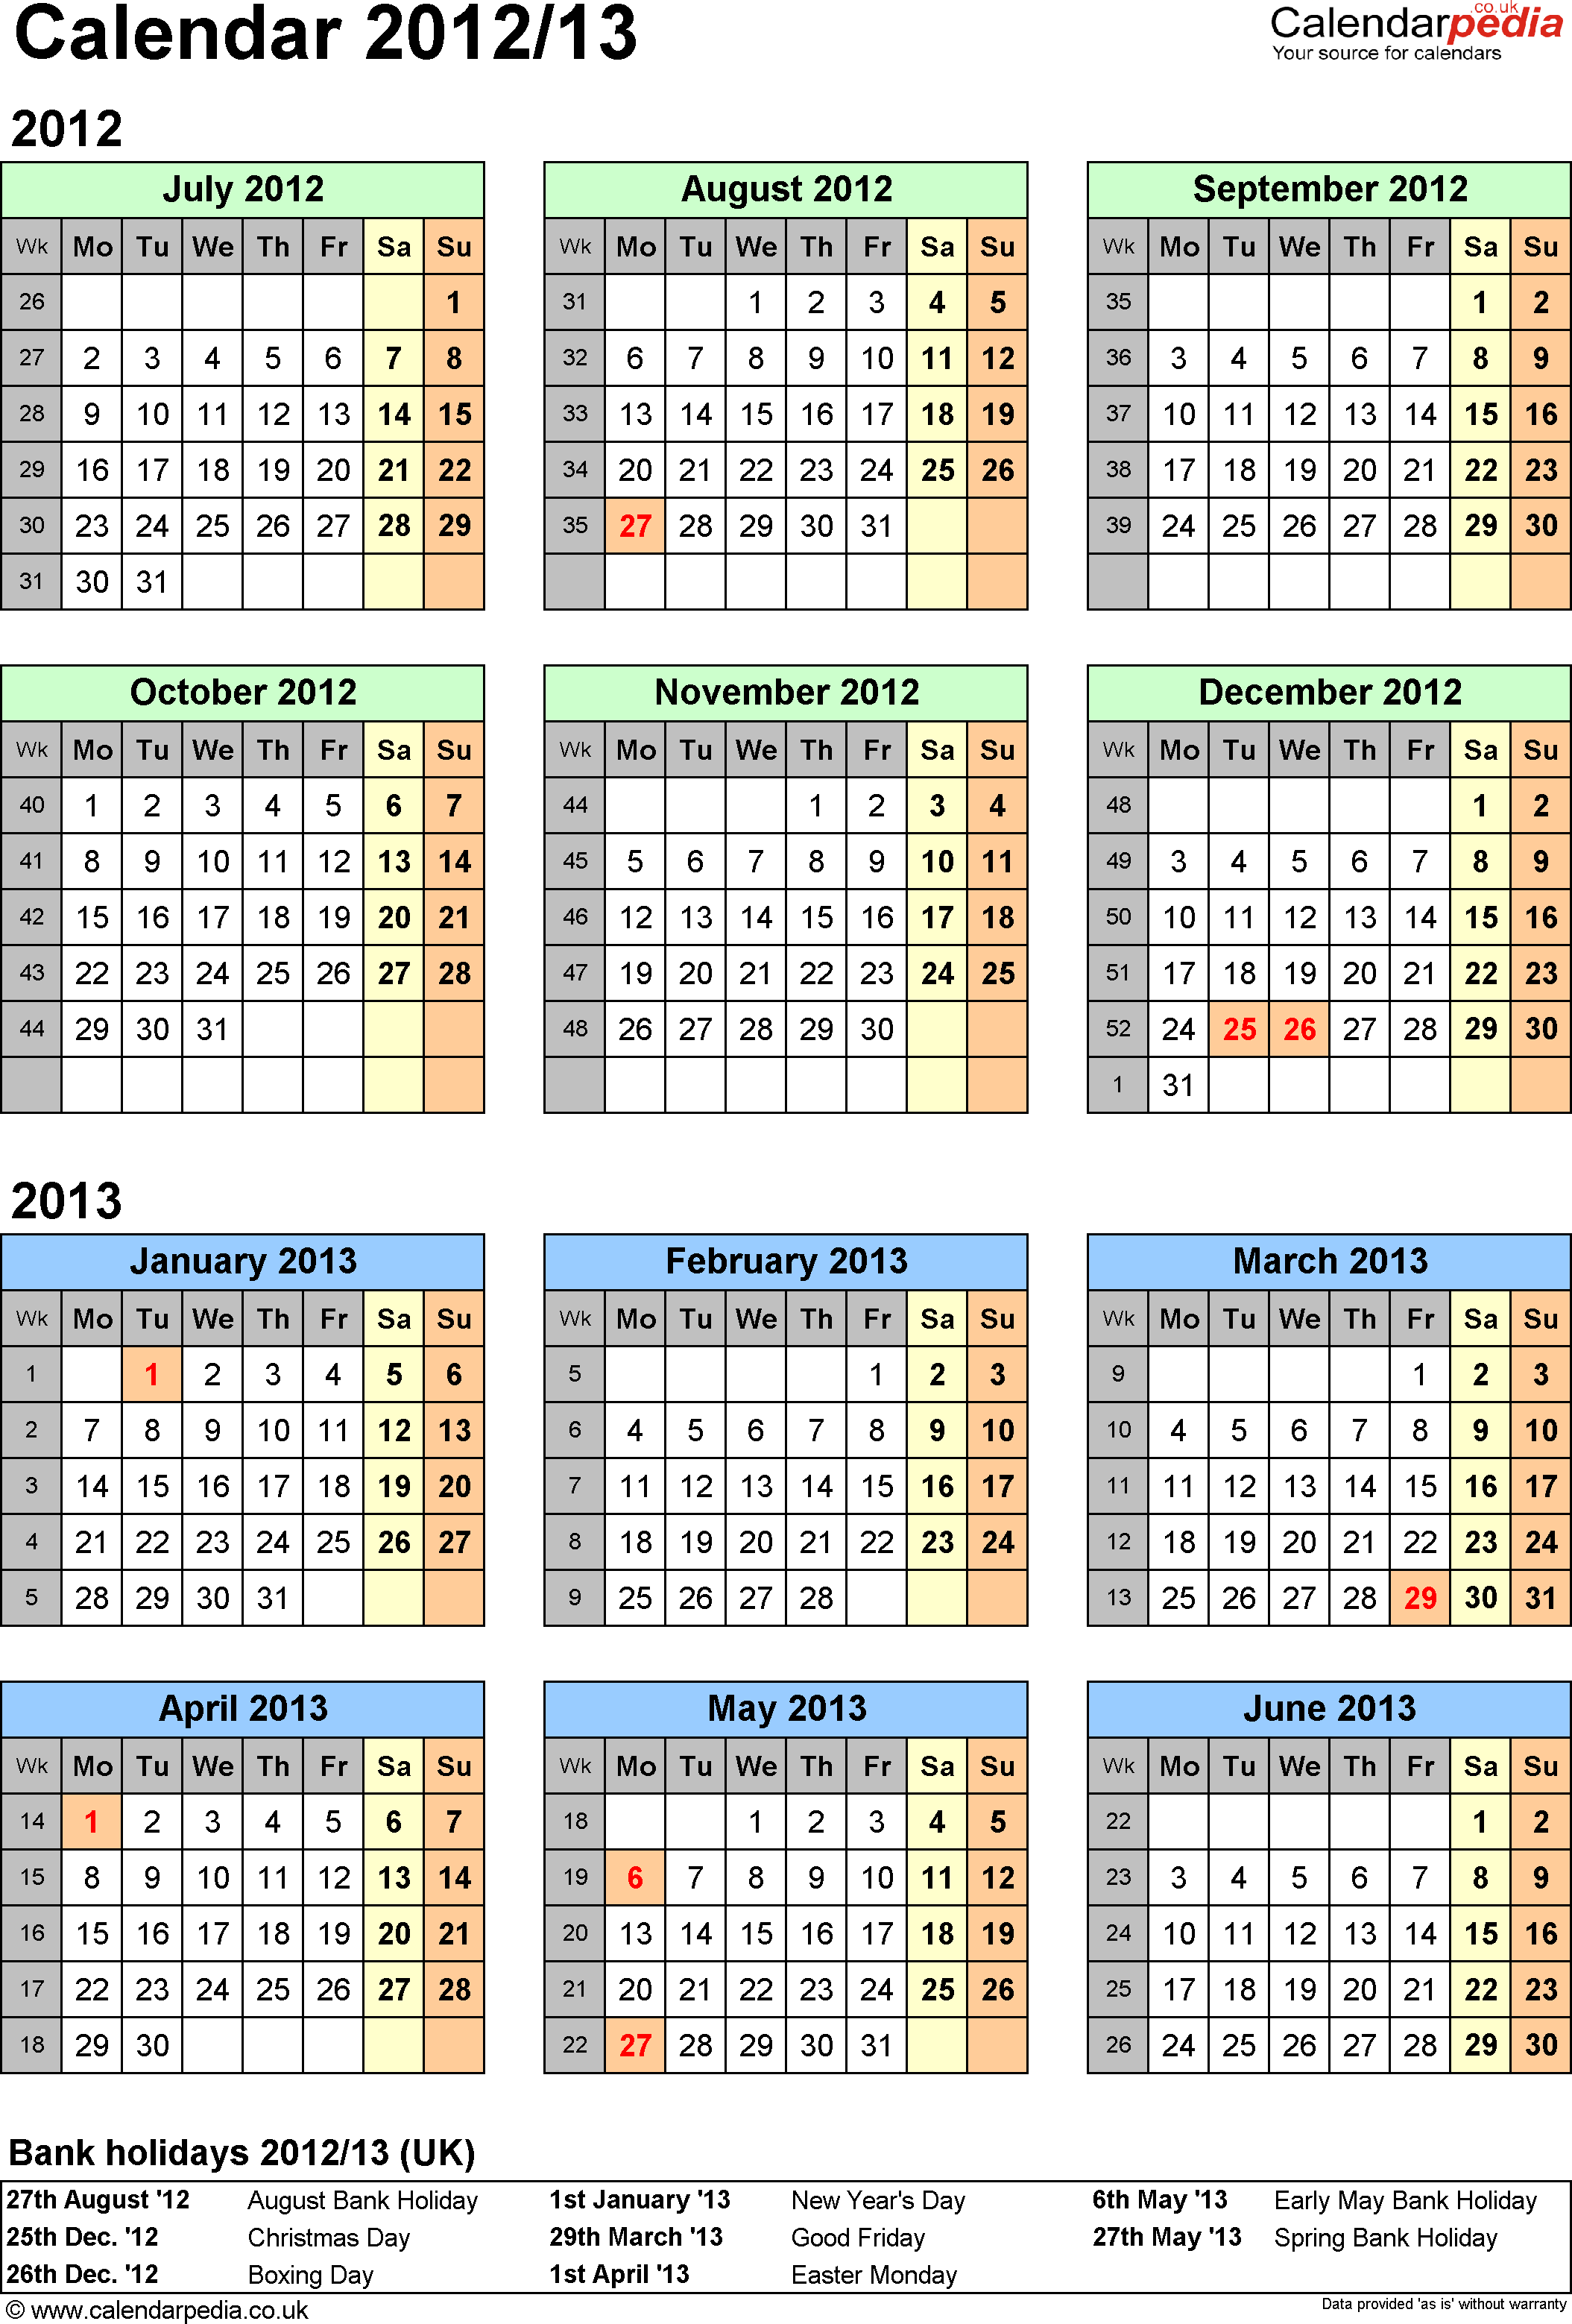 Template 2: Word template for split year calendar 2012/2013 (portrait orientation, 1 page, A4)